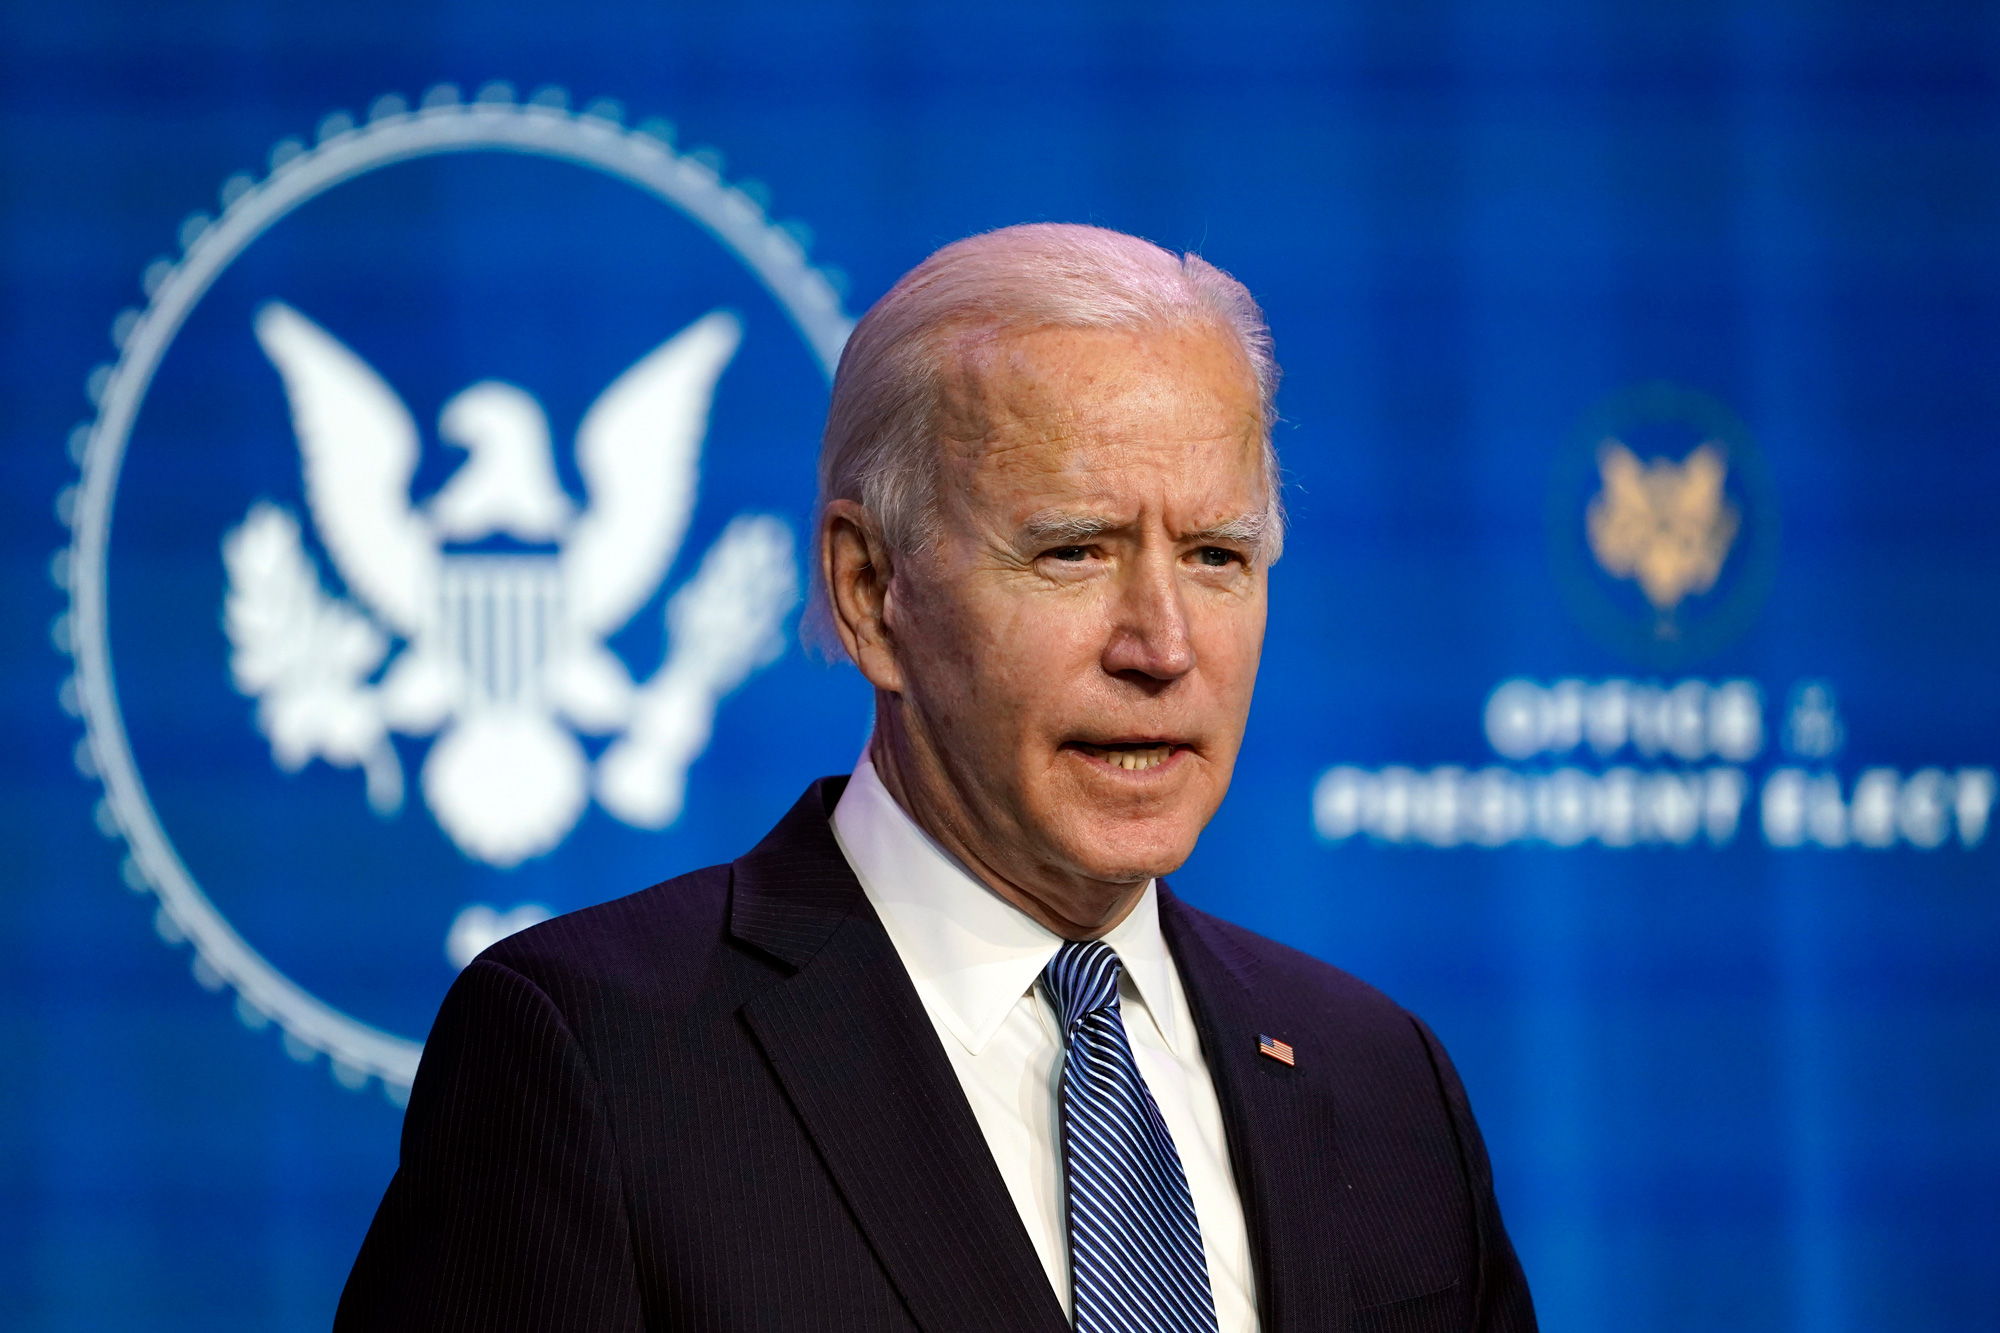 President-elect Joe Biden speaks during an event at The Queen theater in Wilmington, Delaware, on January 7.